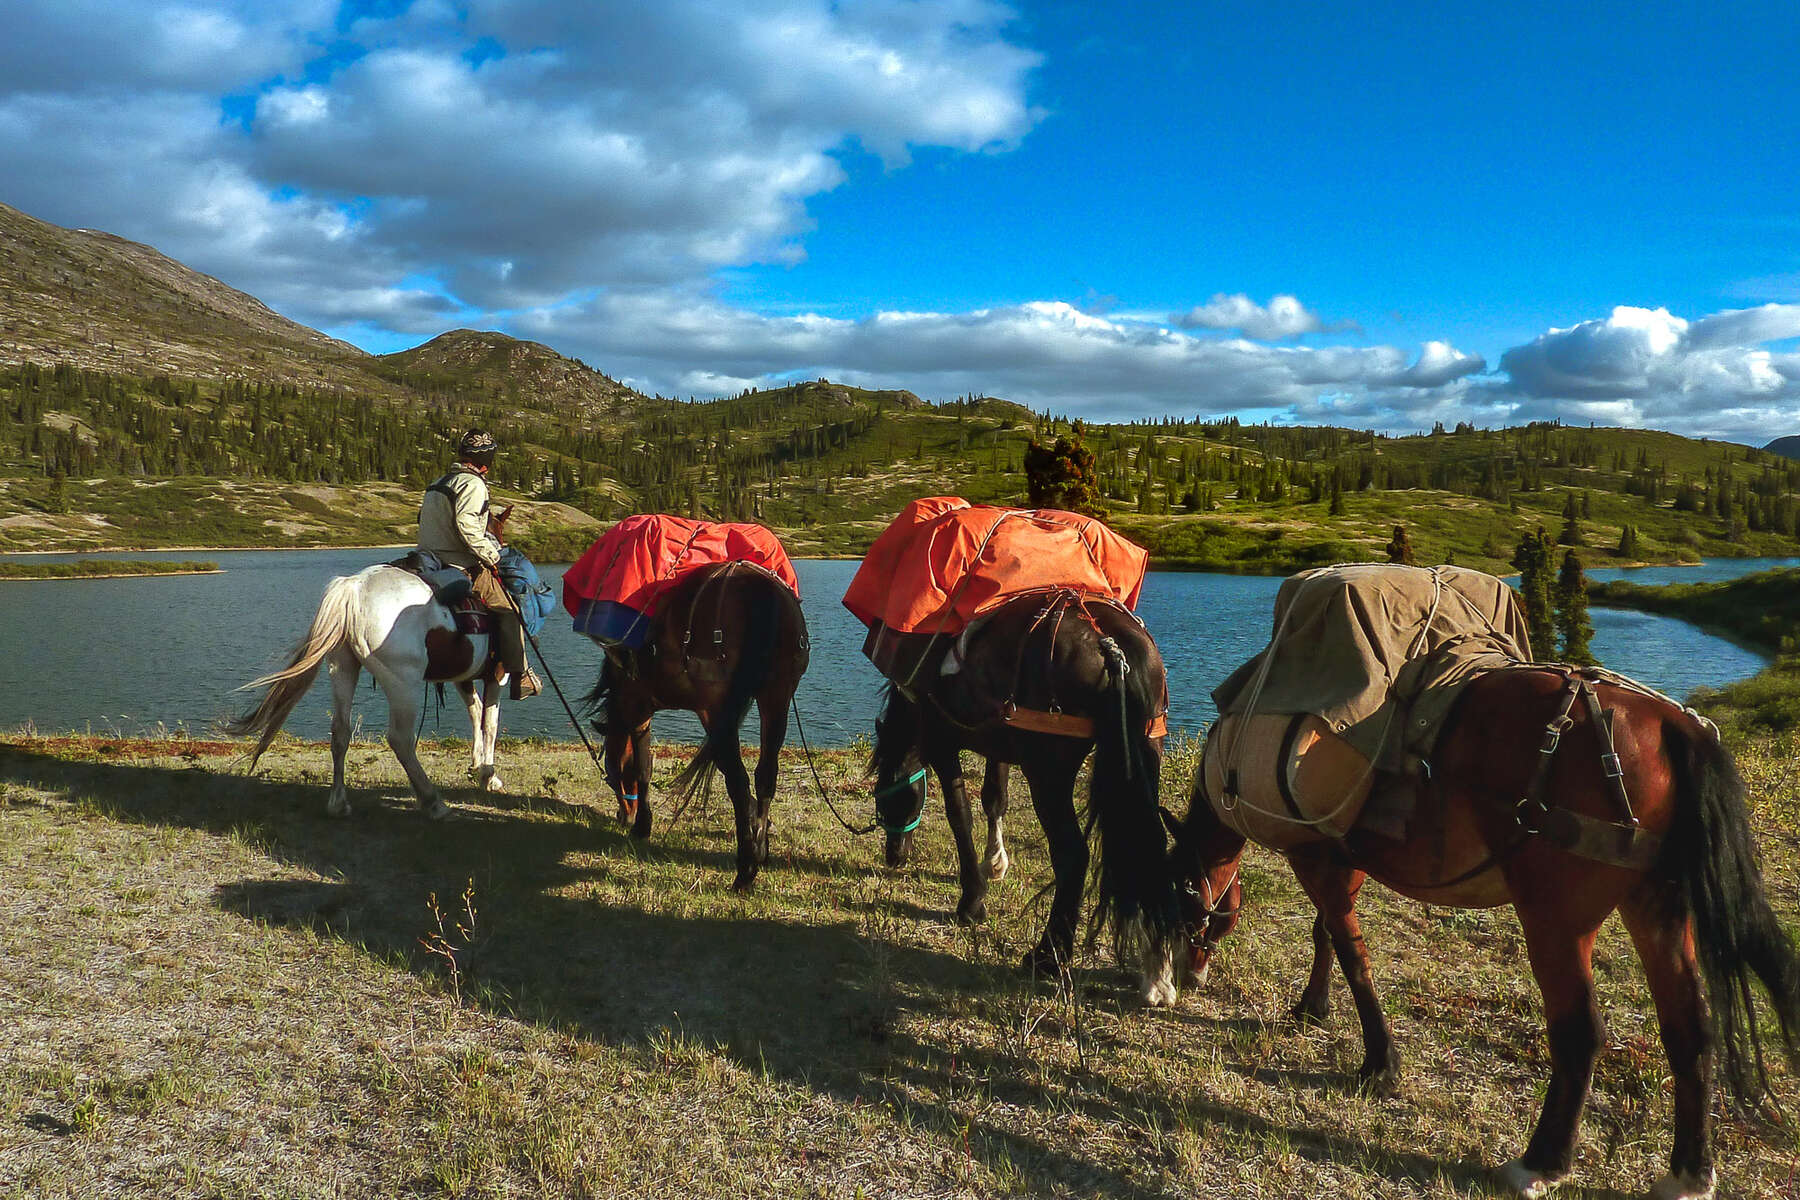 Rider and pack horses in Yukon, Canada